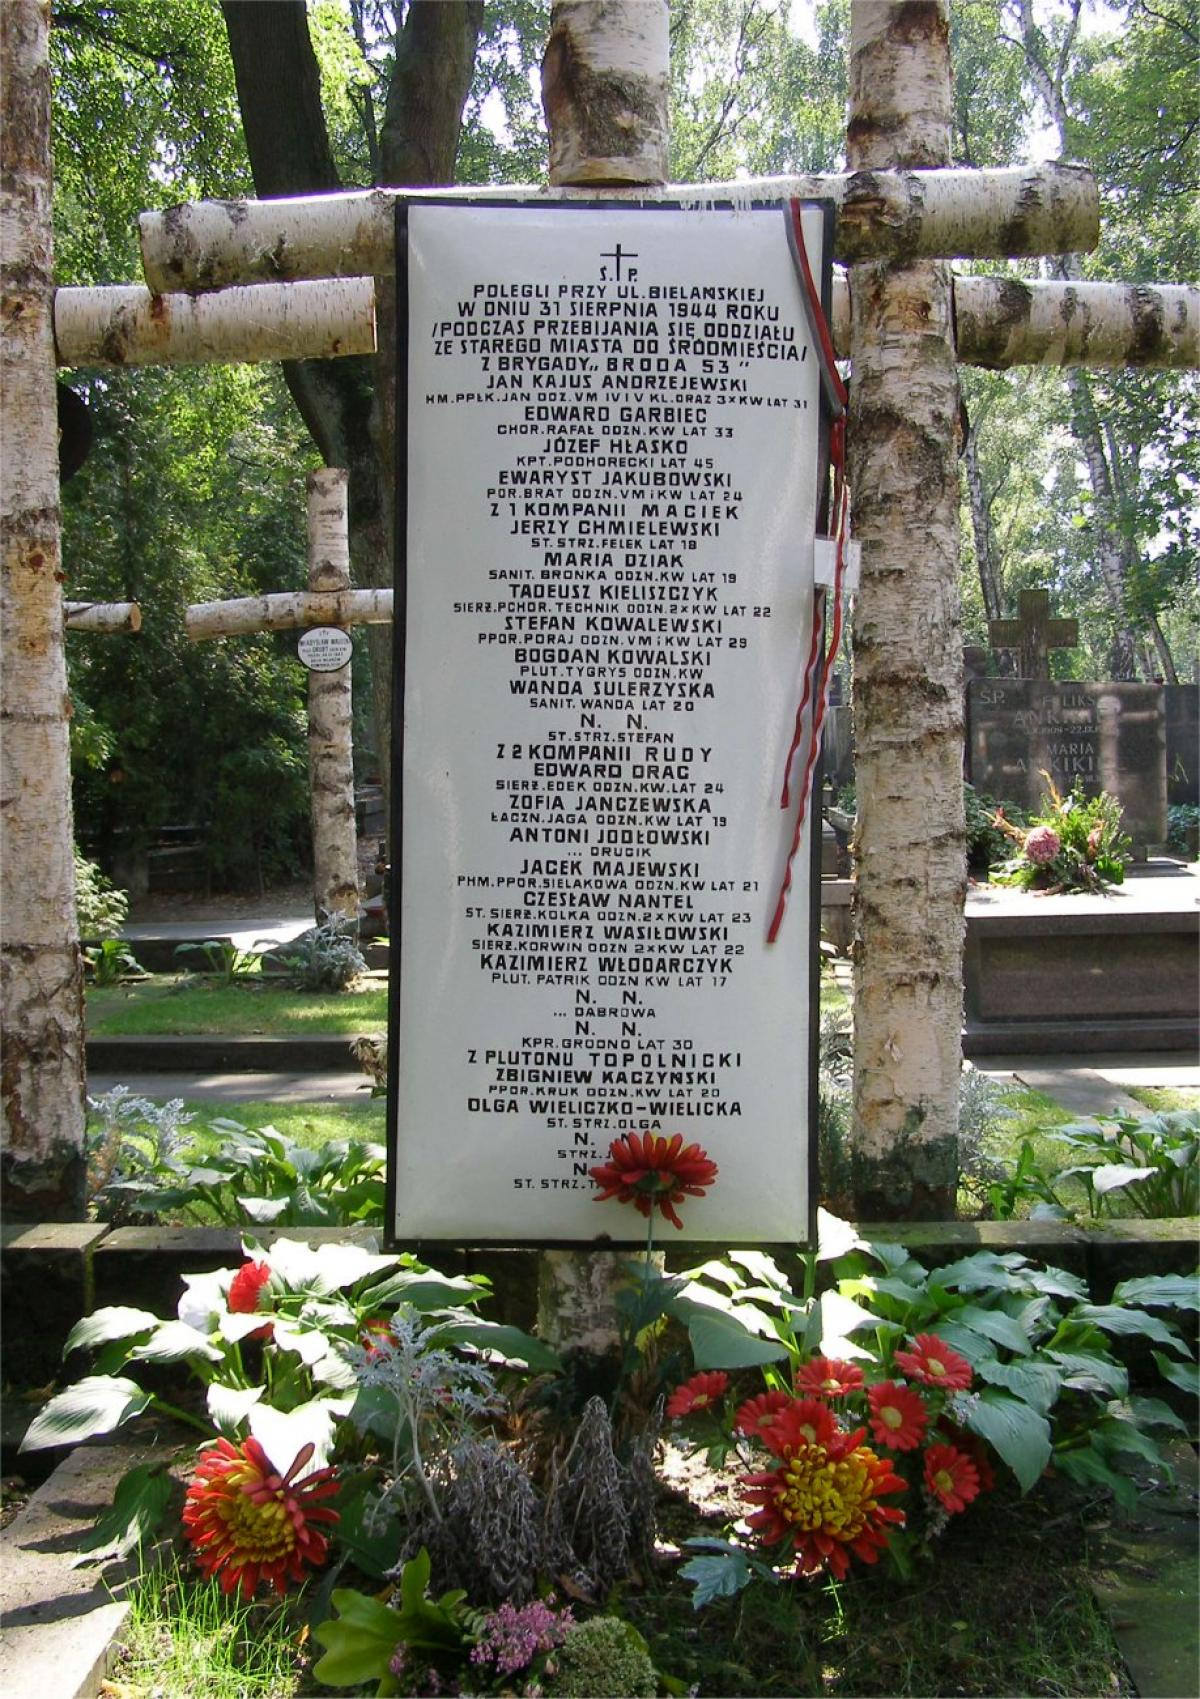 Wikipedia, Cichociemni tombs, Files with no machine-readable source, Military Cemetery in Warsaw, Se